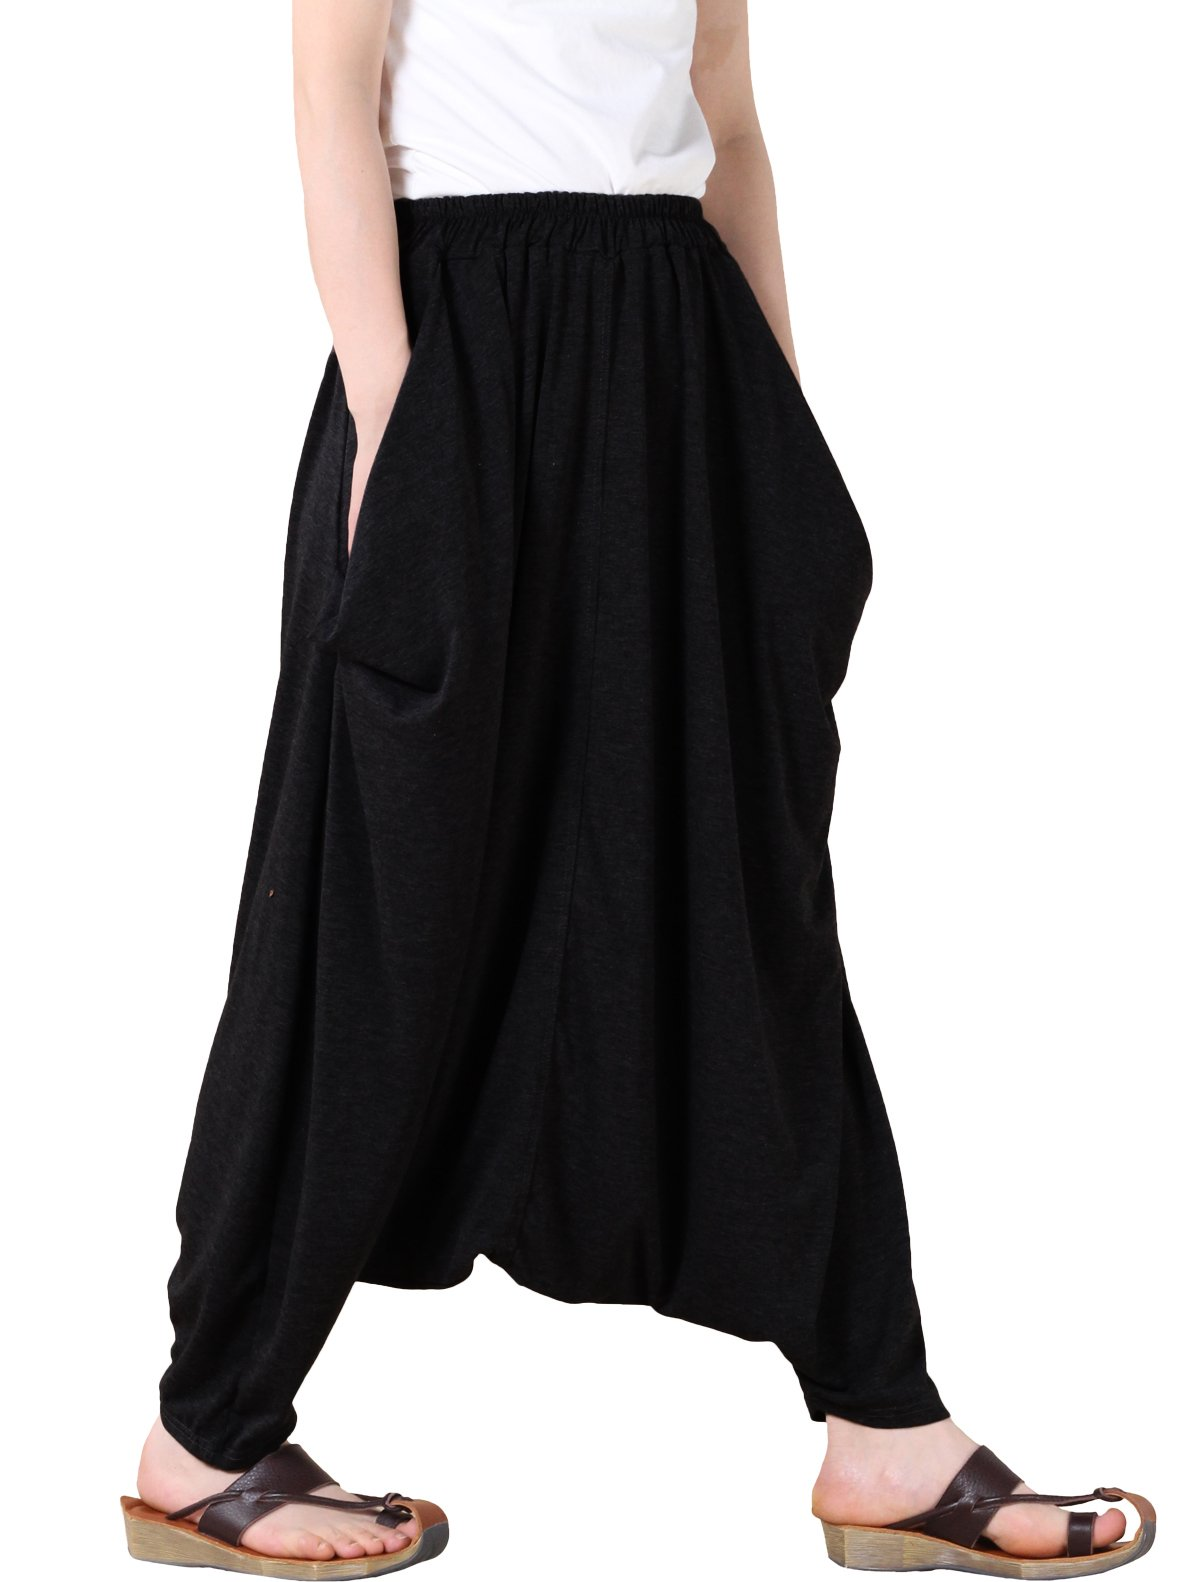 Mordenmiss Women's Casual Drop Crotch Harem Pants (Style 1-black) One Size